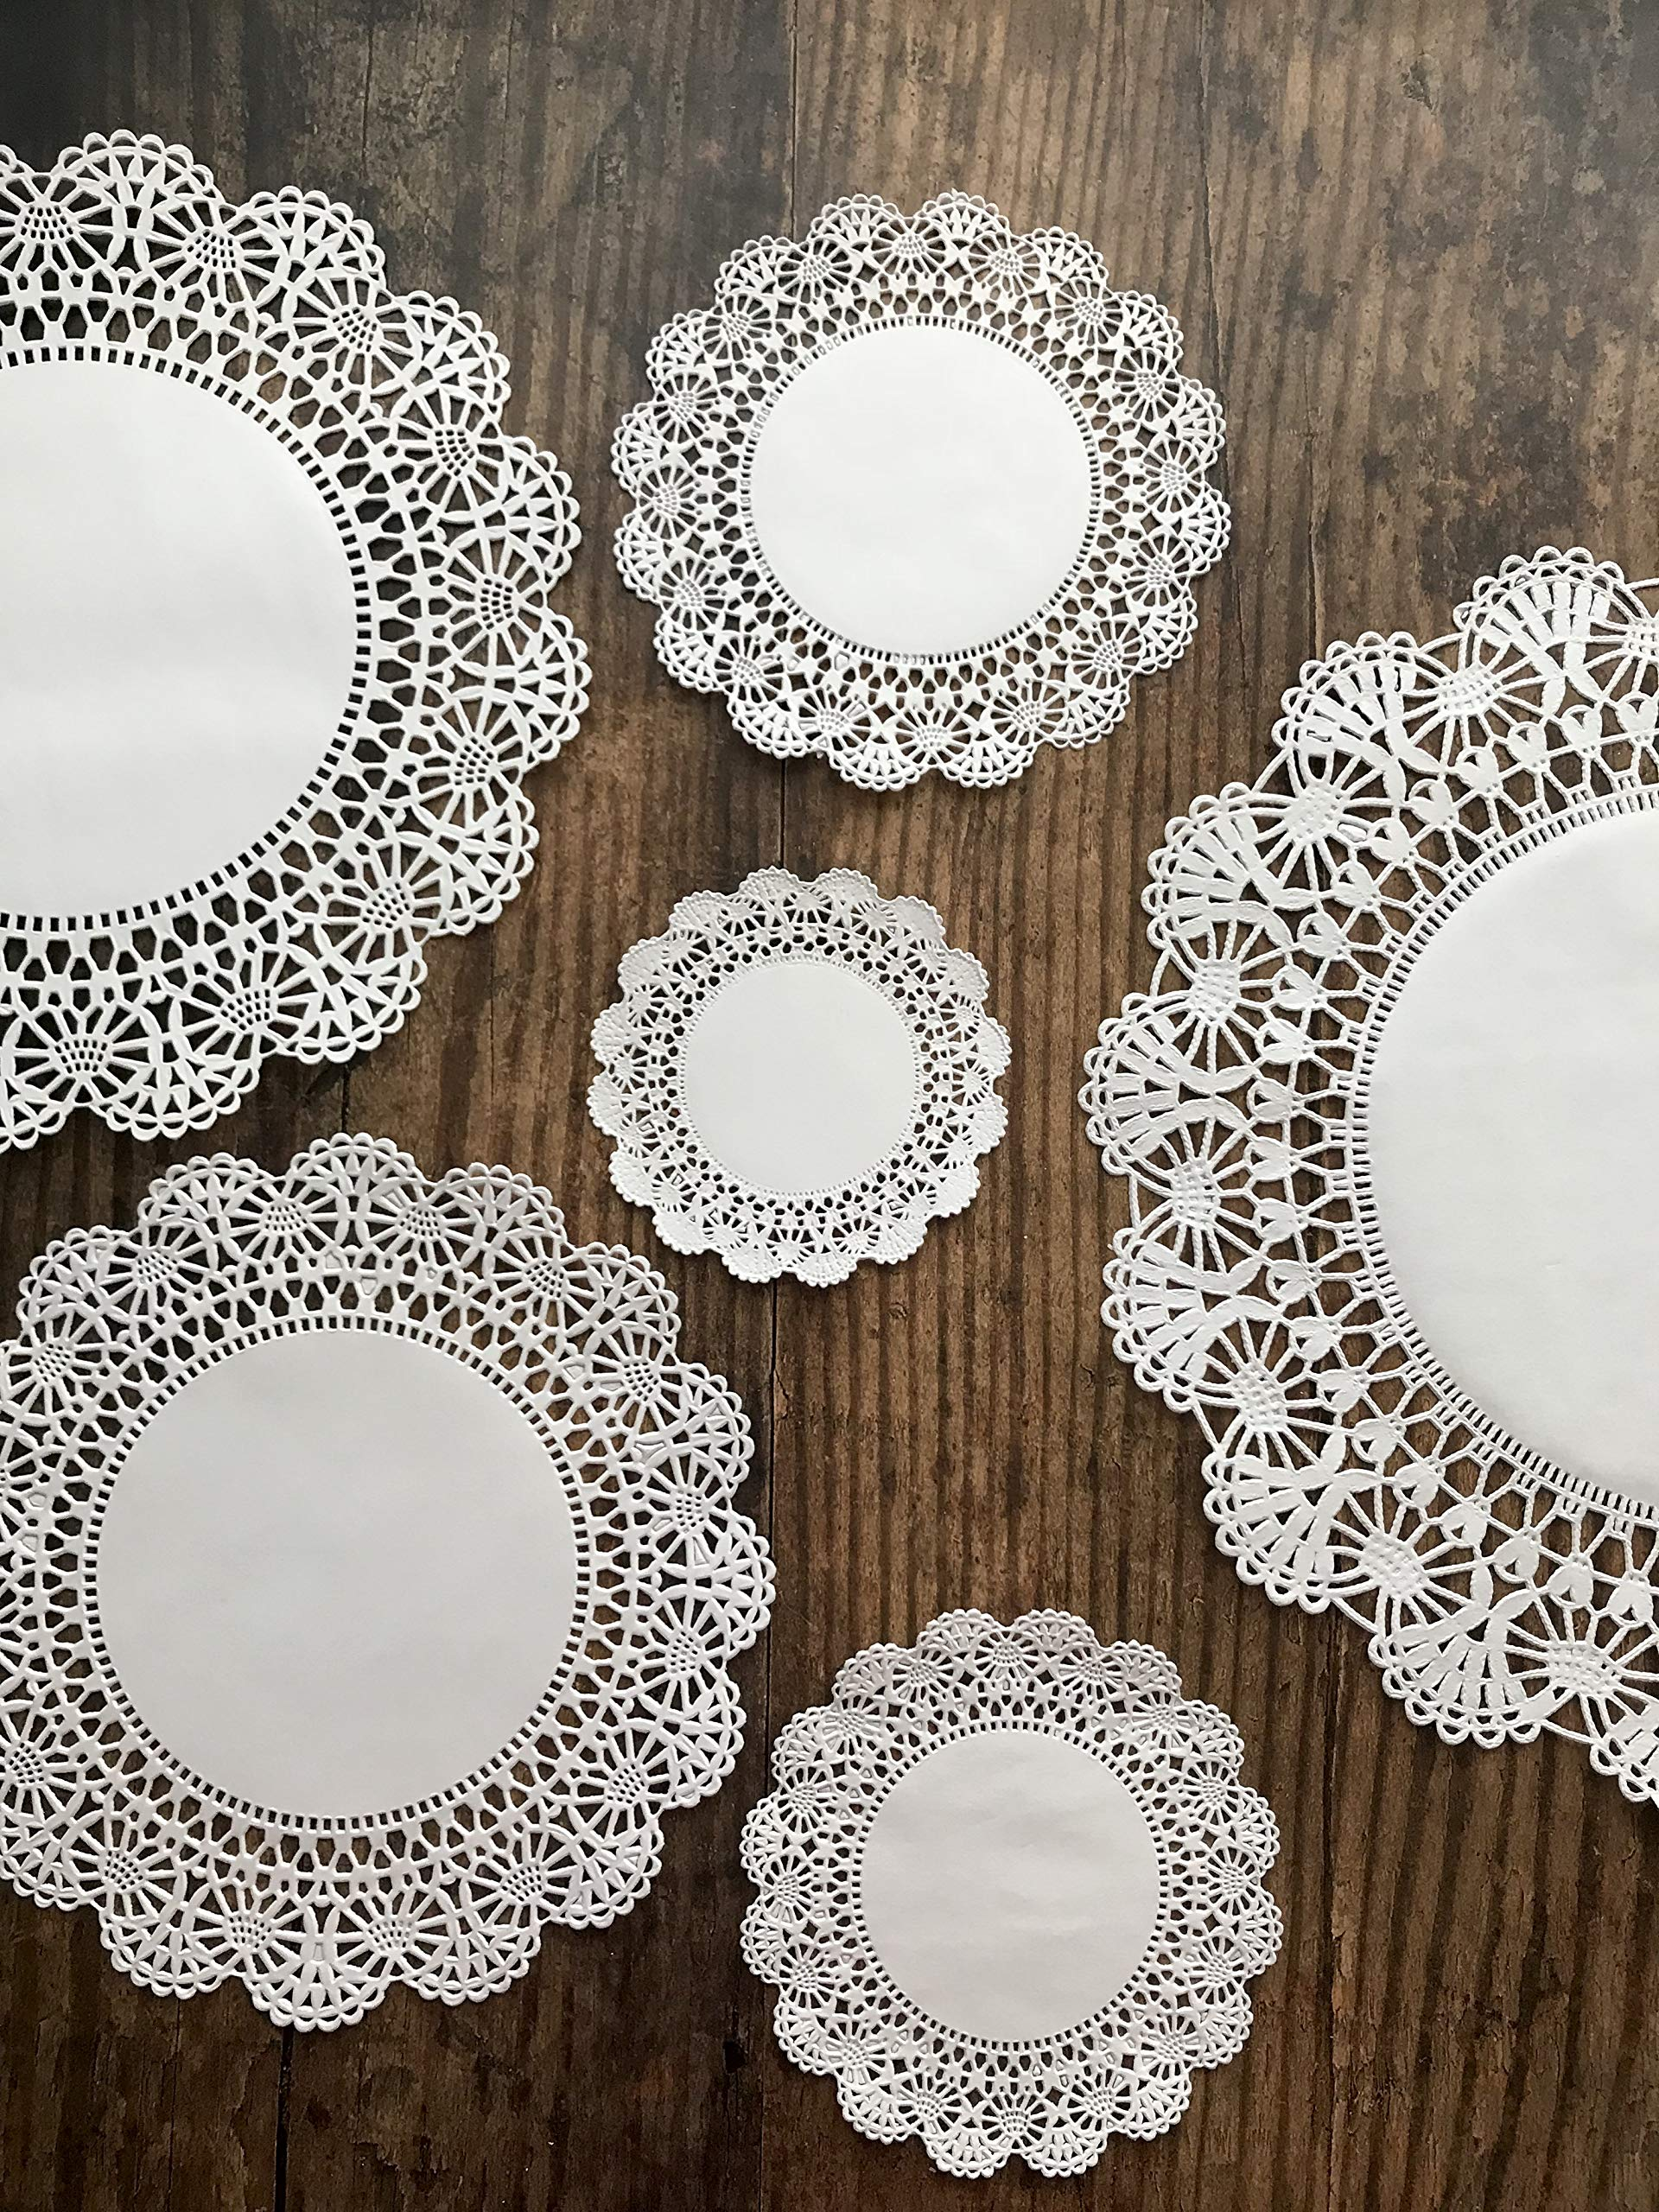 Round paper Lace Table Doilies – 4, 5, 6, 8, 10 and 12 inch Assorted Sizes; White Decorative Tableware papers Placemats, (Variety pack of 120 – 20 of each) by The Baker Celebrations (Image #2)